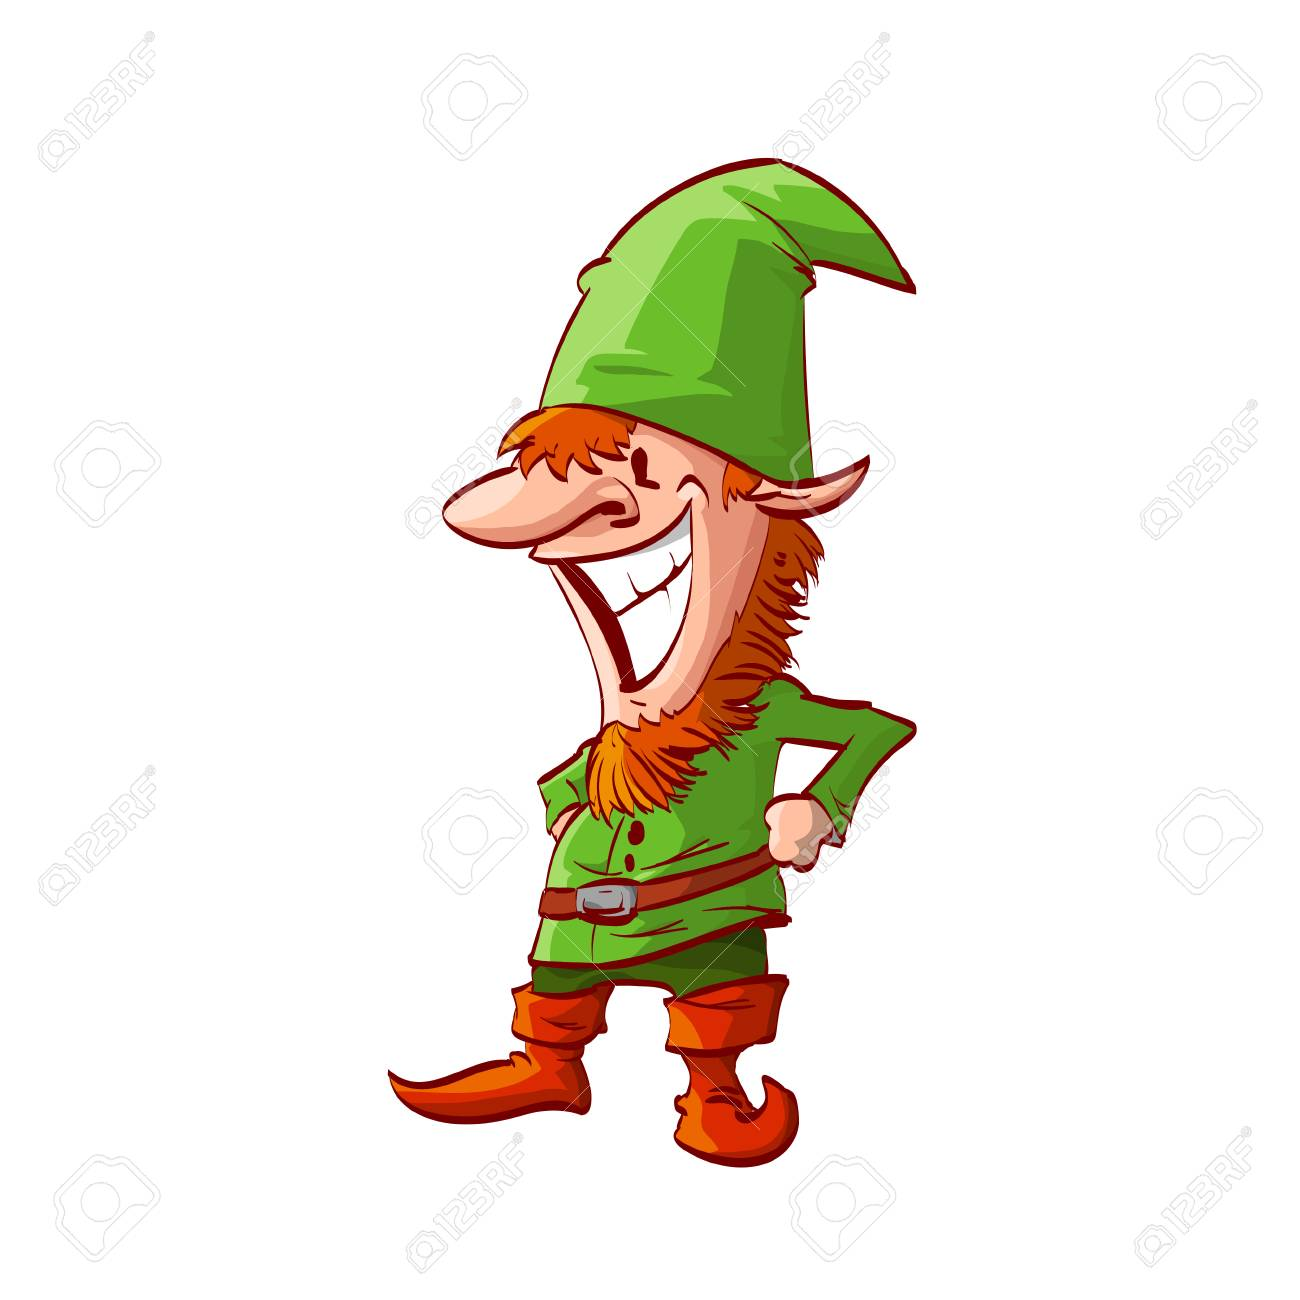 Colorful Vector Illustration Of A Christmas Elf With Green Clothes ...